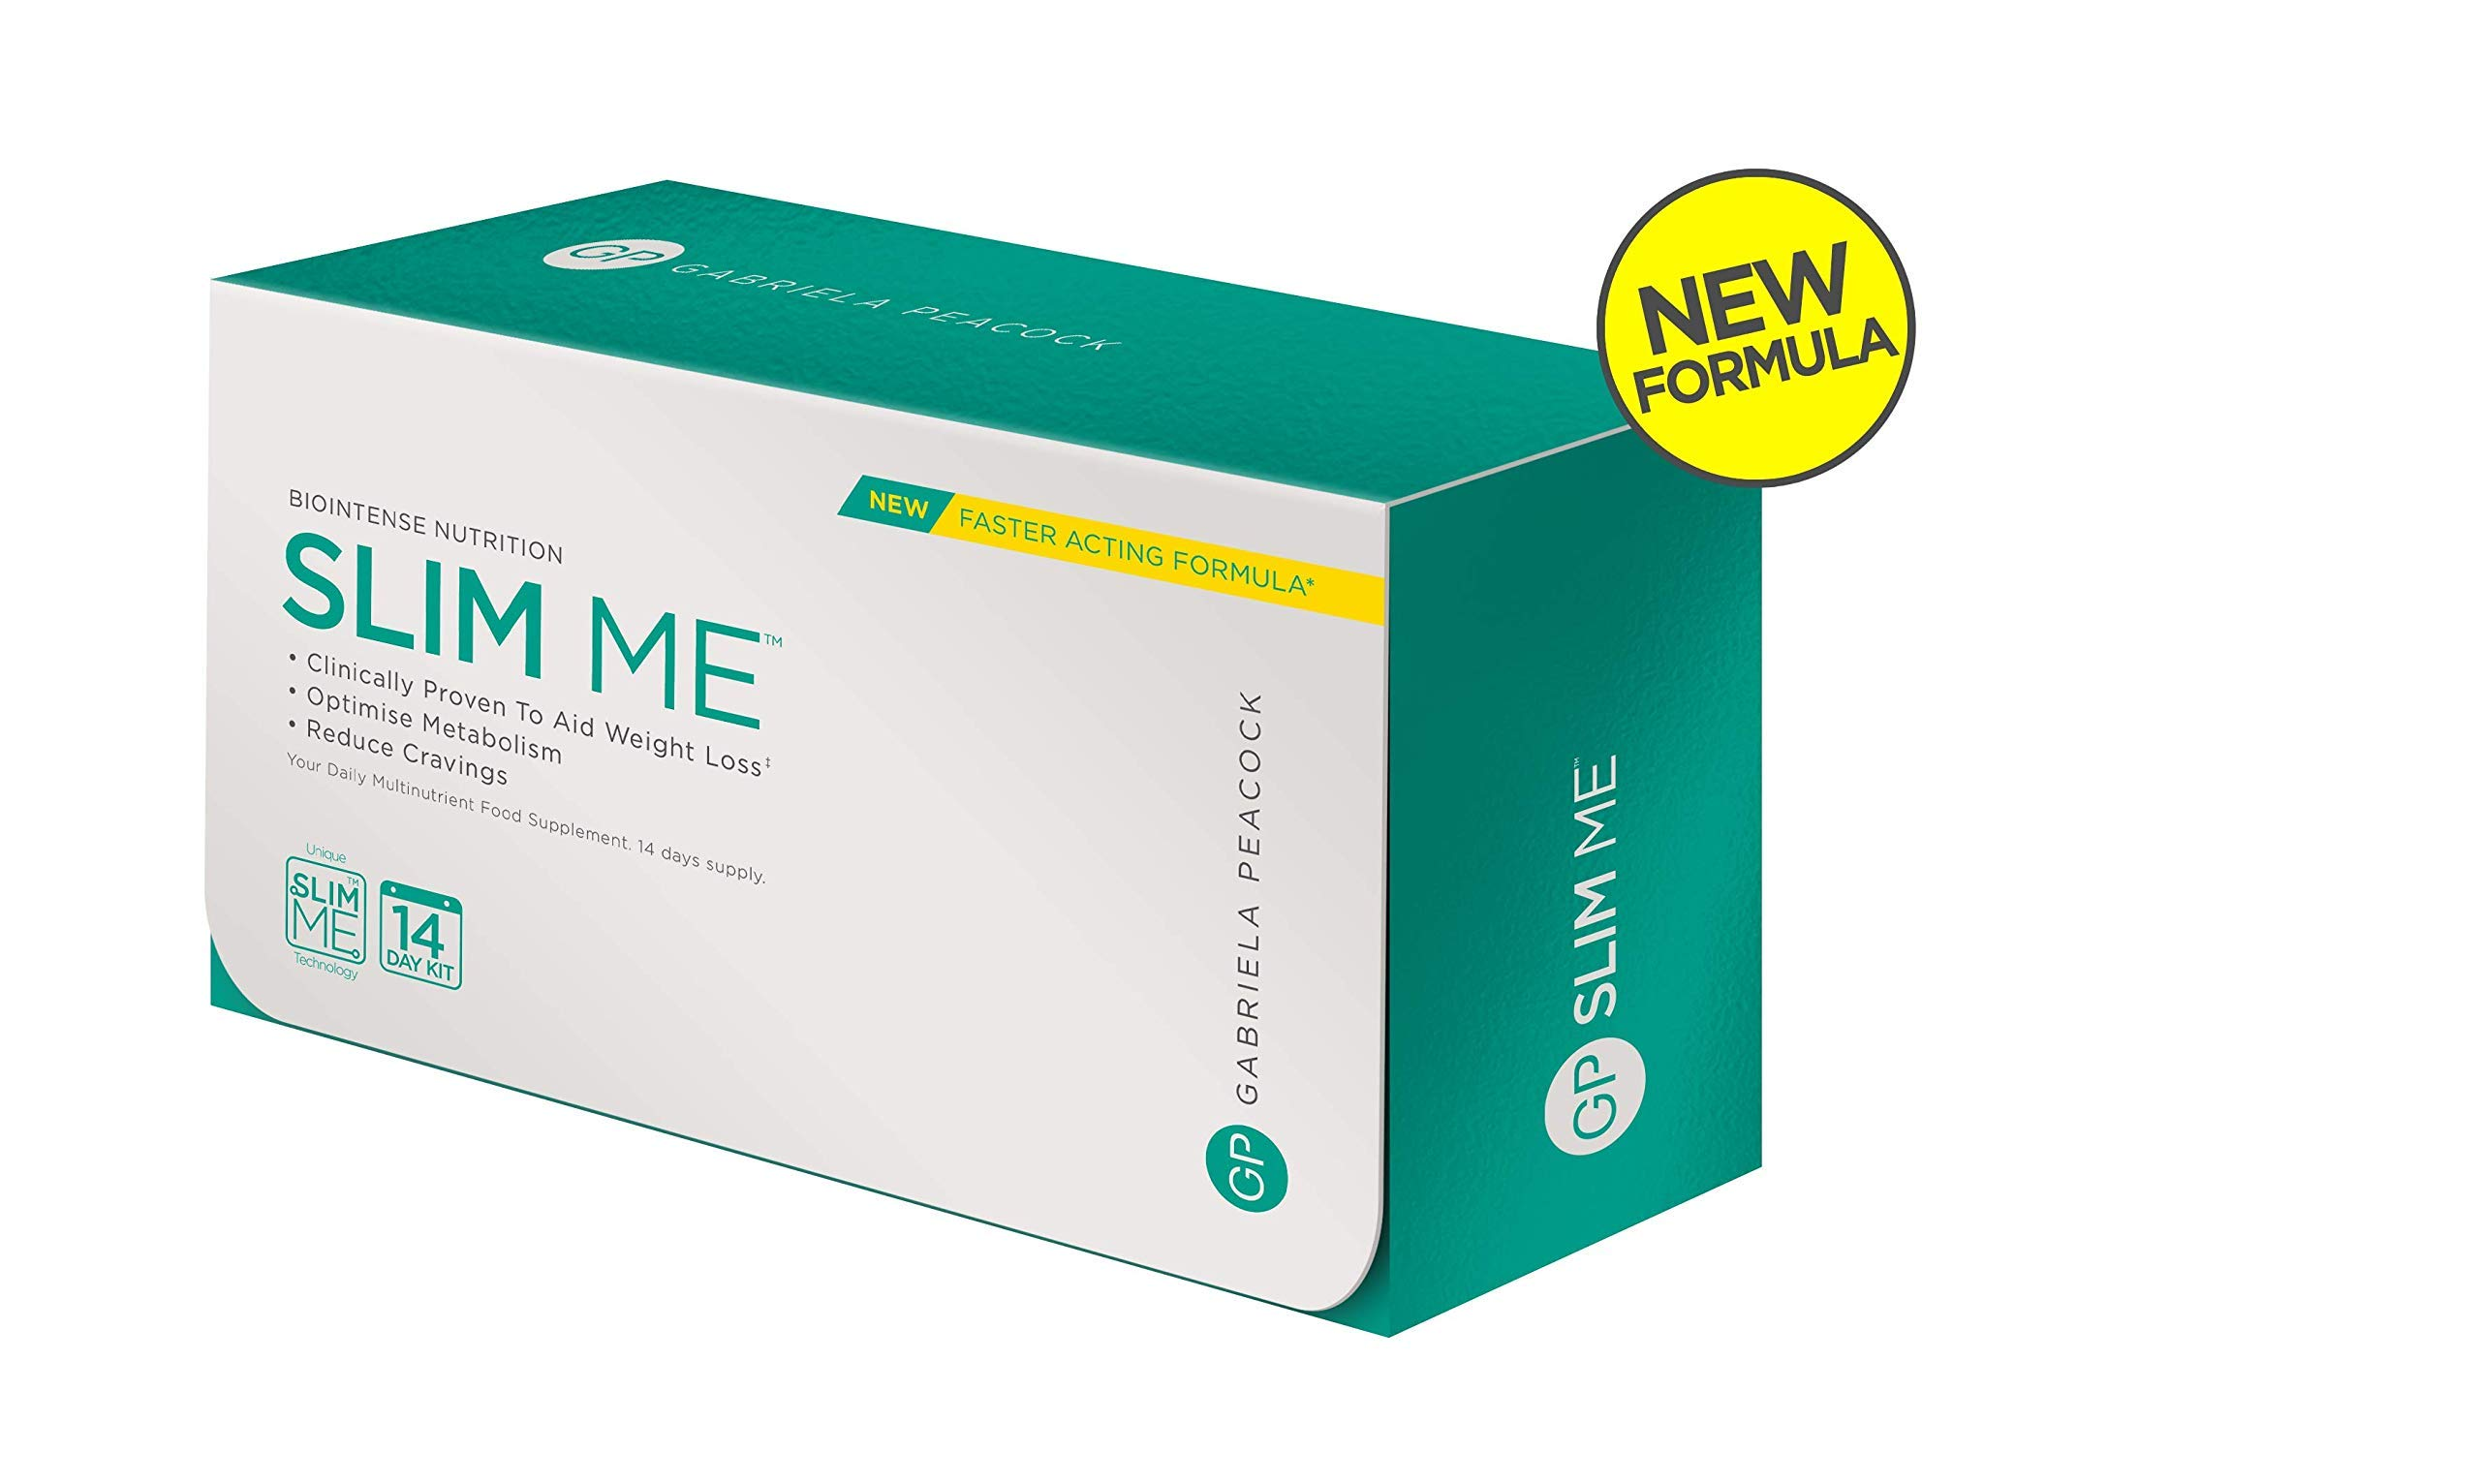 New & Improved Slim Me 14 Days Slimming Supplements Kit - Powerful Slimming Supplement - with Glucomannan to Suppress Appetite & Regulate Blood Sugar - 14 Days Supply